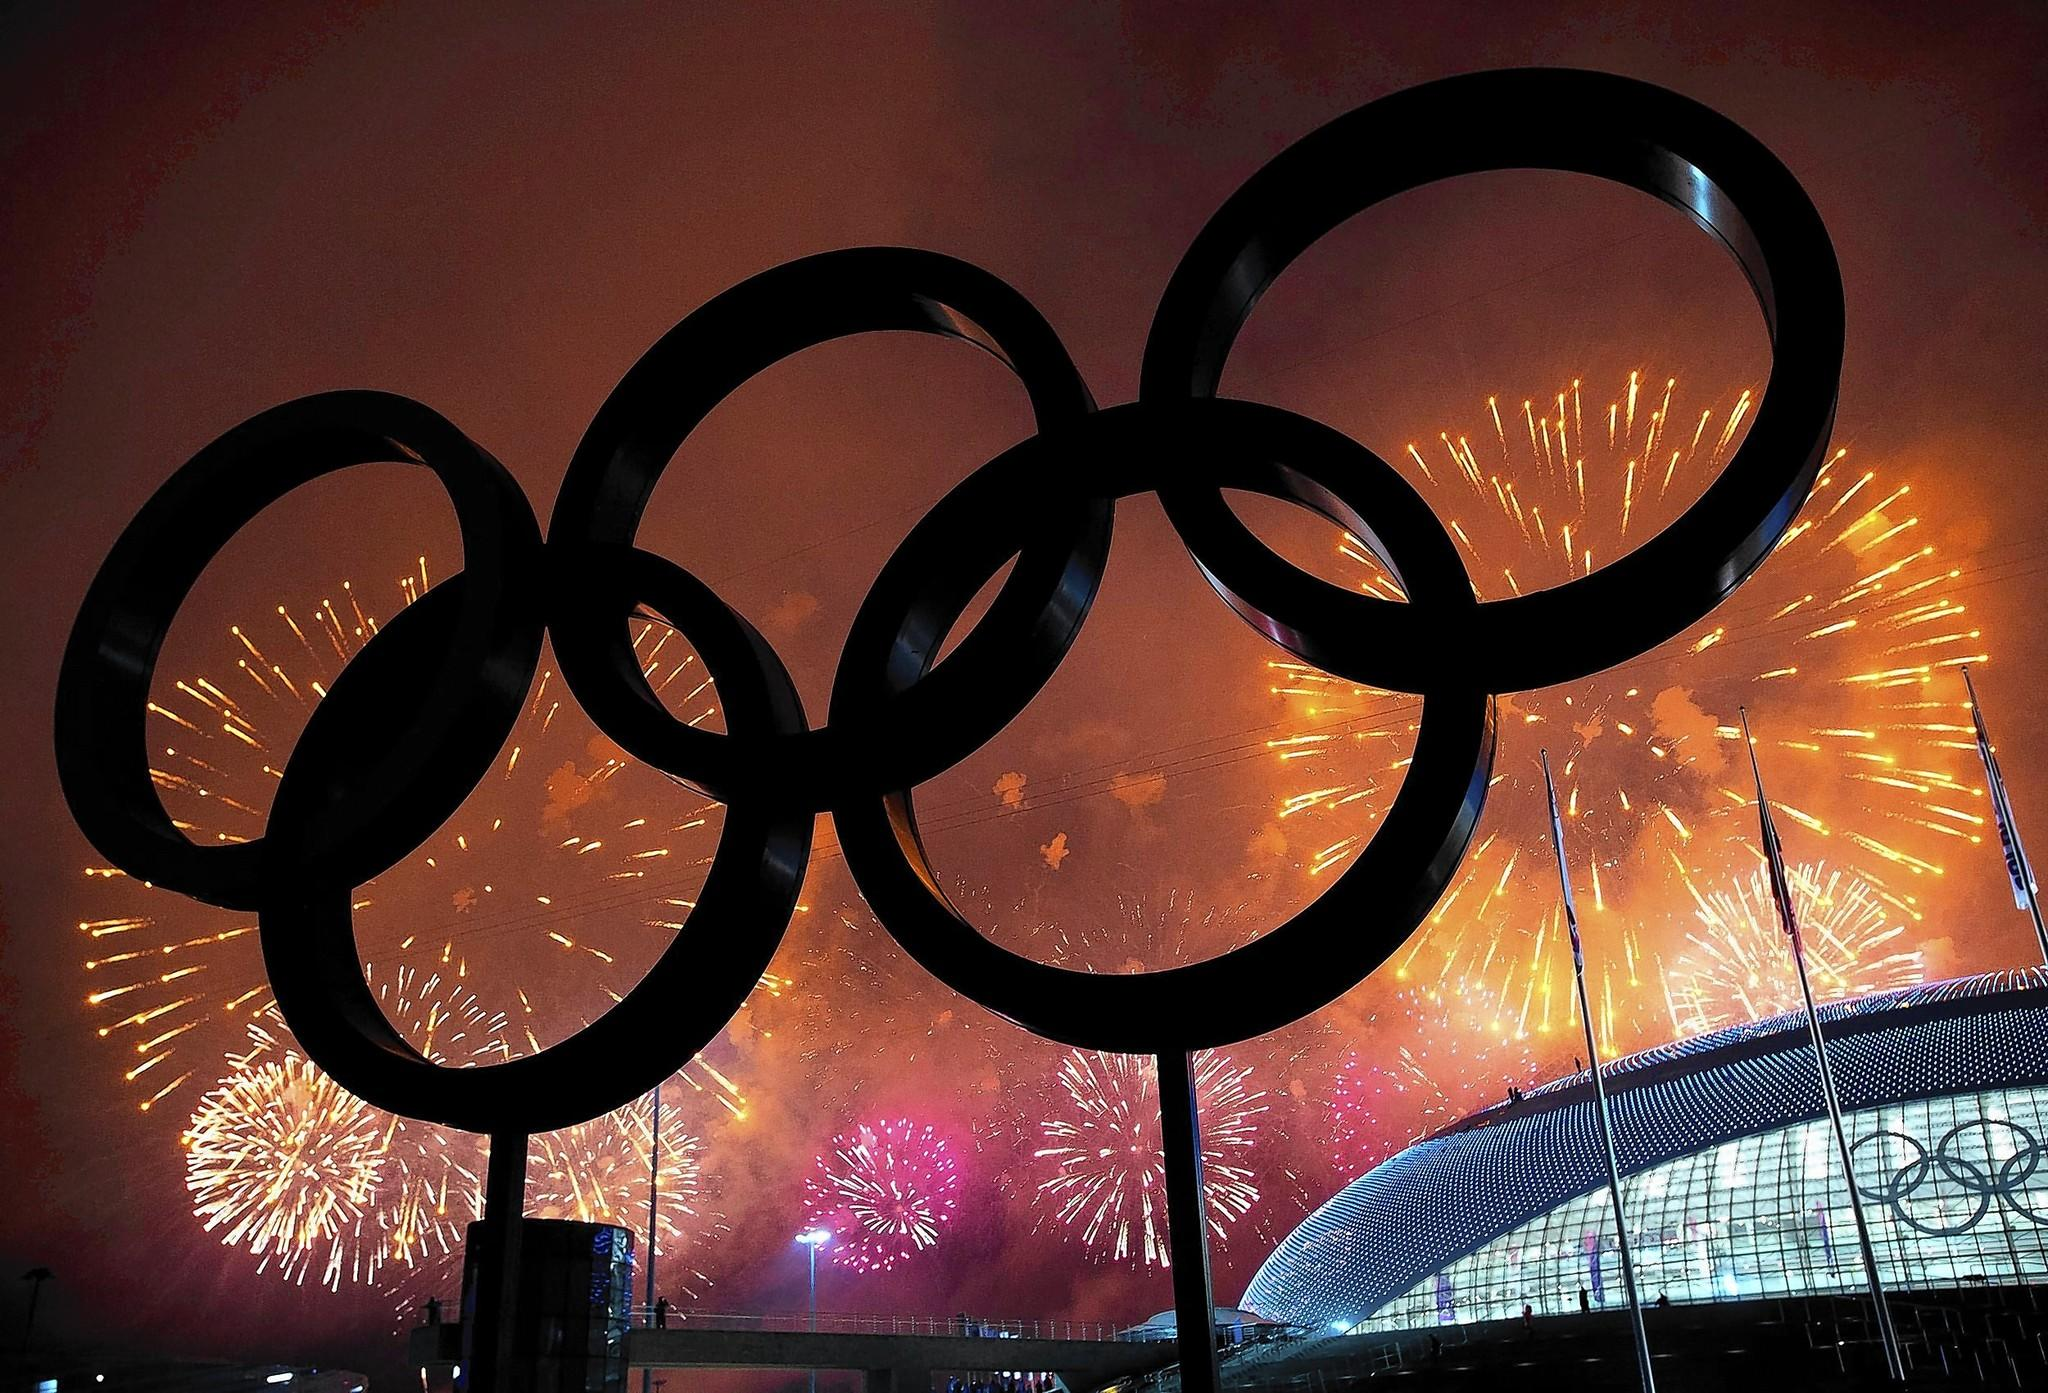 The Olympic Rings are silhouetted as fireworks light up the sky during the closing ceremonies at the 2014 Winter Olympics in Sochi, Russia. NBCUniversal's coverage of the Games brought in $1.1 billion in revenue.